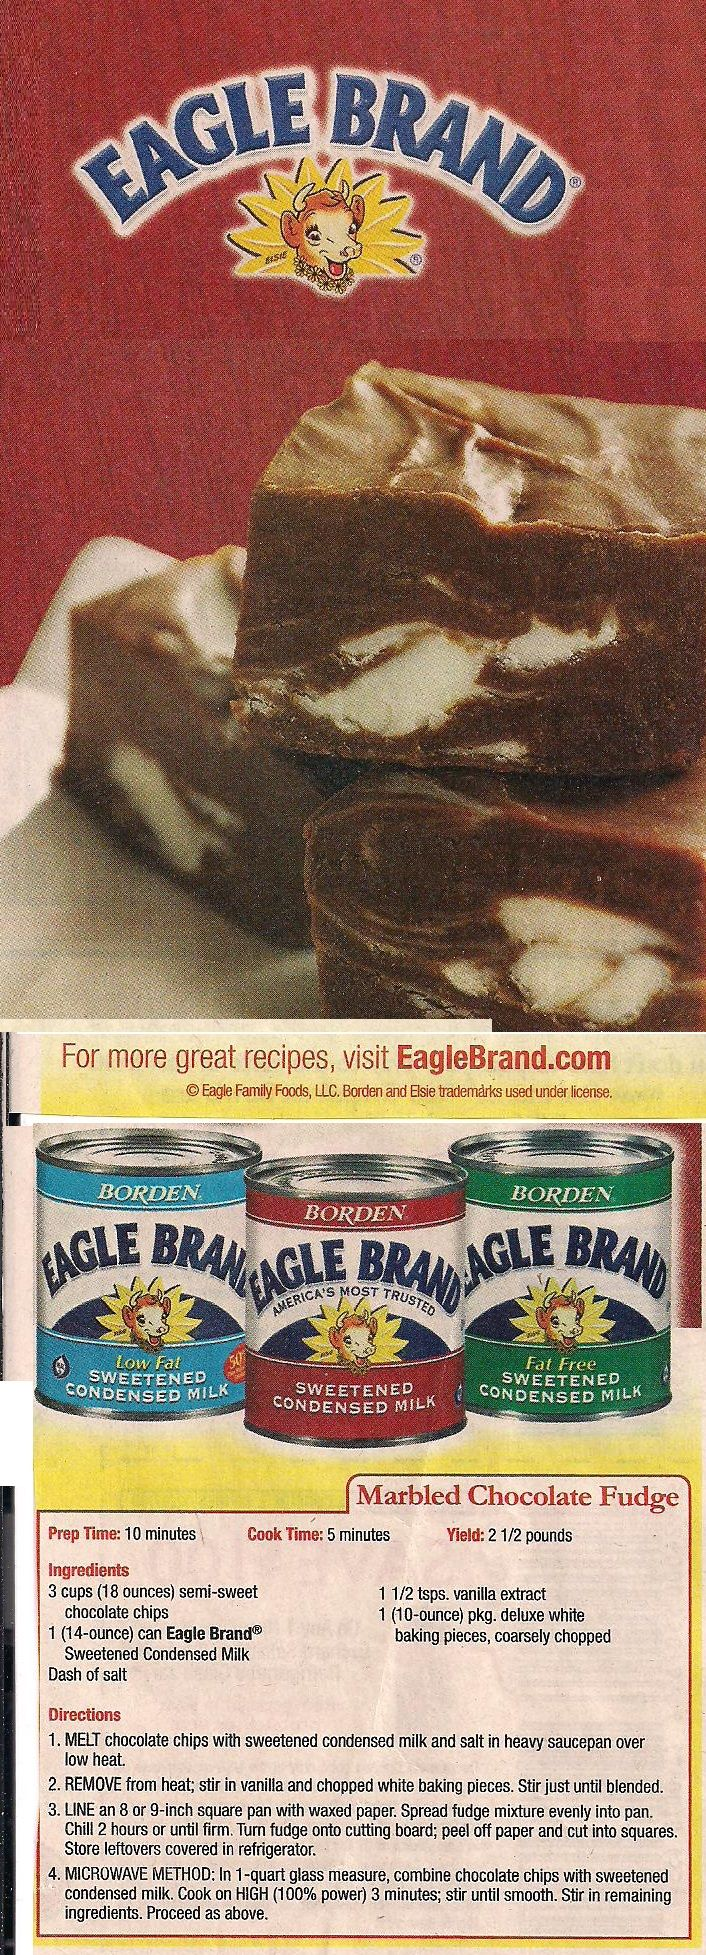 EAGLE BRAND MILK Marbled Fudge recipe from a magazine. - ***** Variation:  use all chocolate chips &  mix in 3/4 cup of chopped chocolate covered toffee bits before spreading.